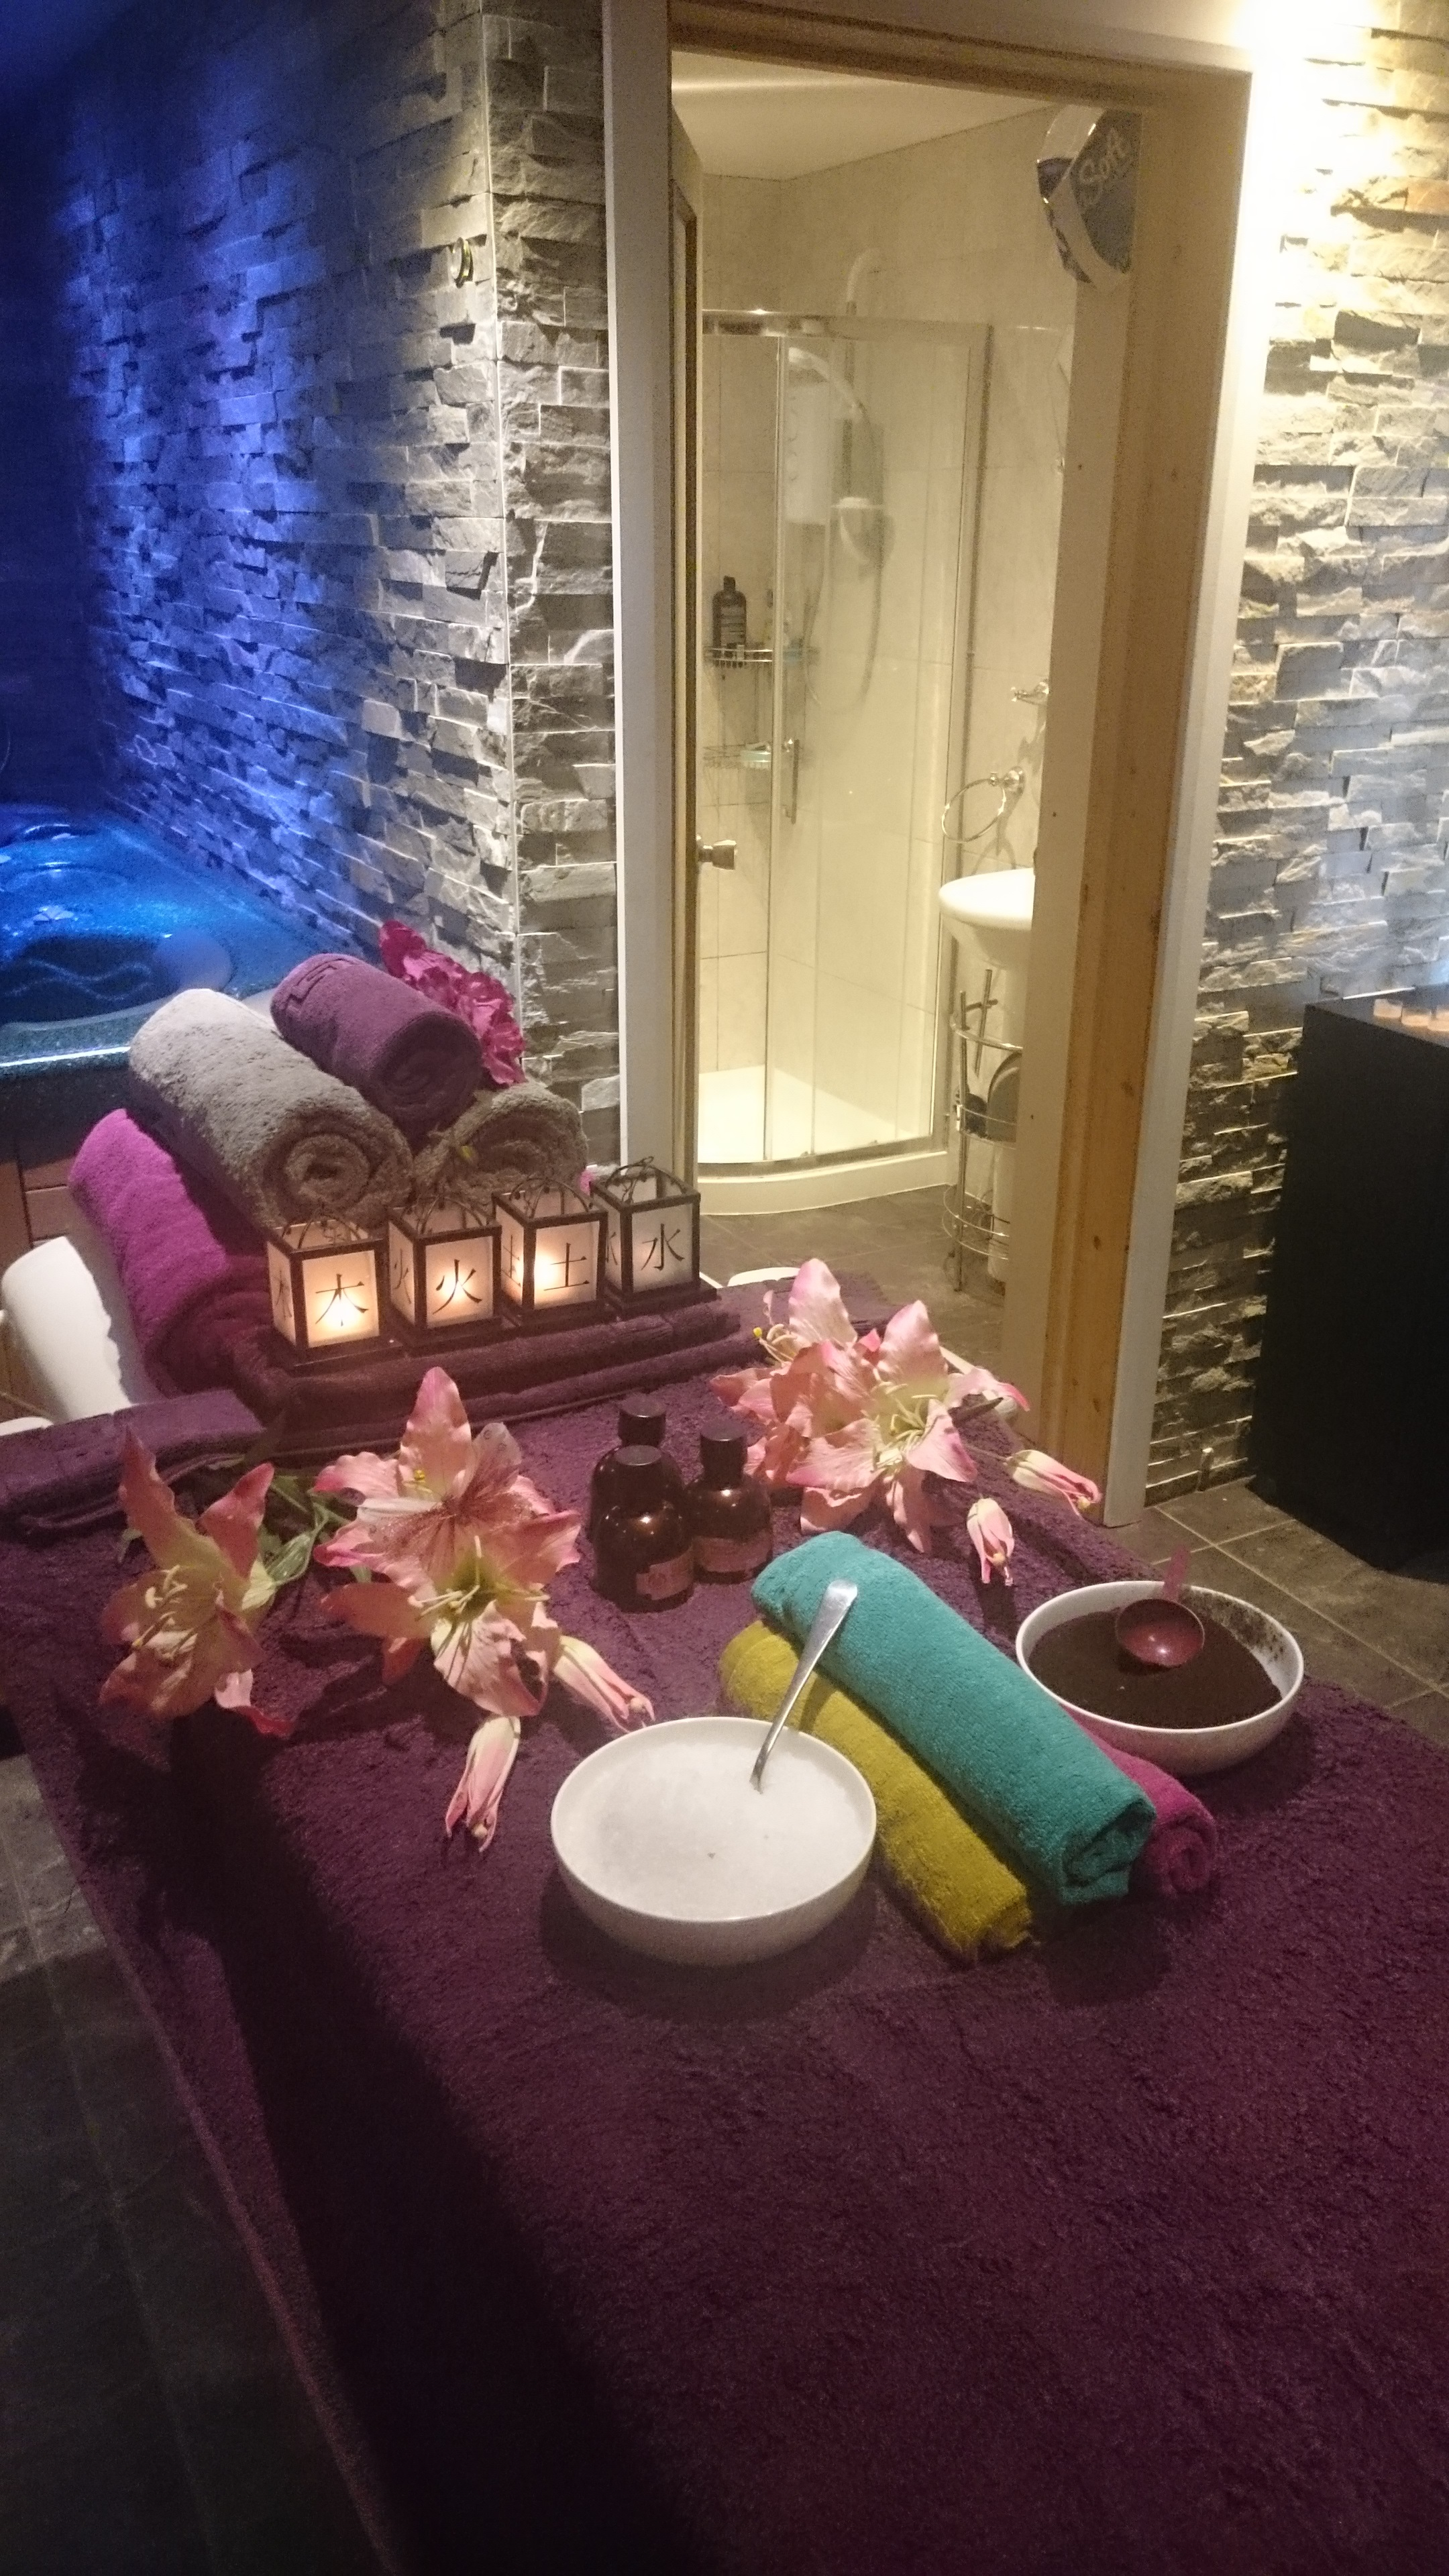 Hydrotherapy Treatment, Massage & Hot Tub Spa - Adult Services in ...